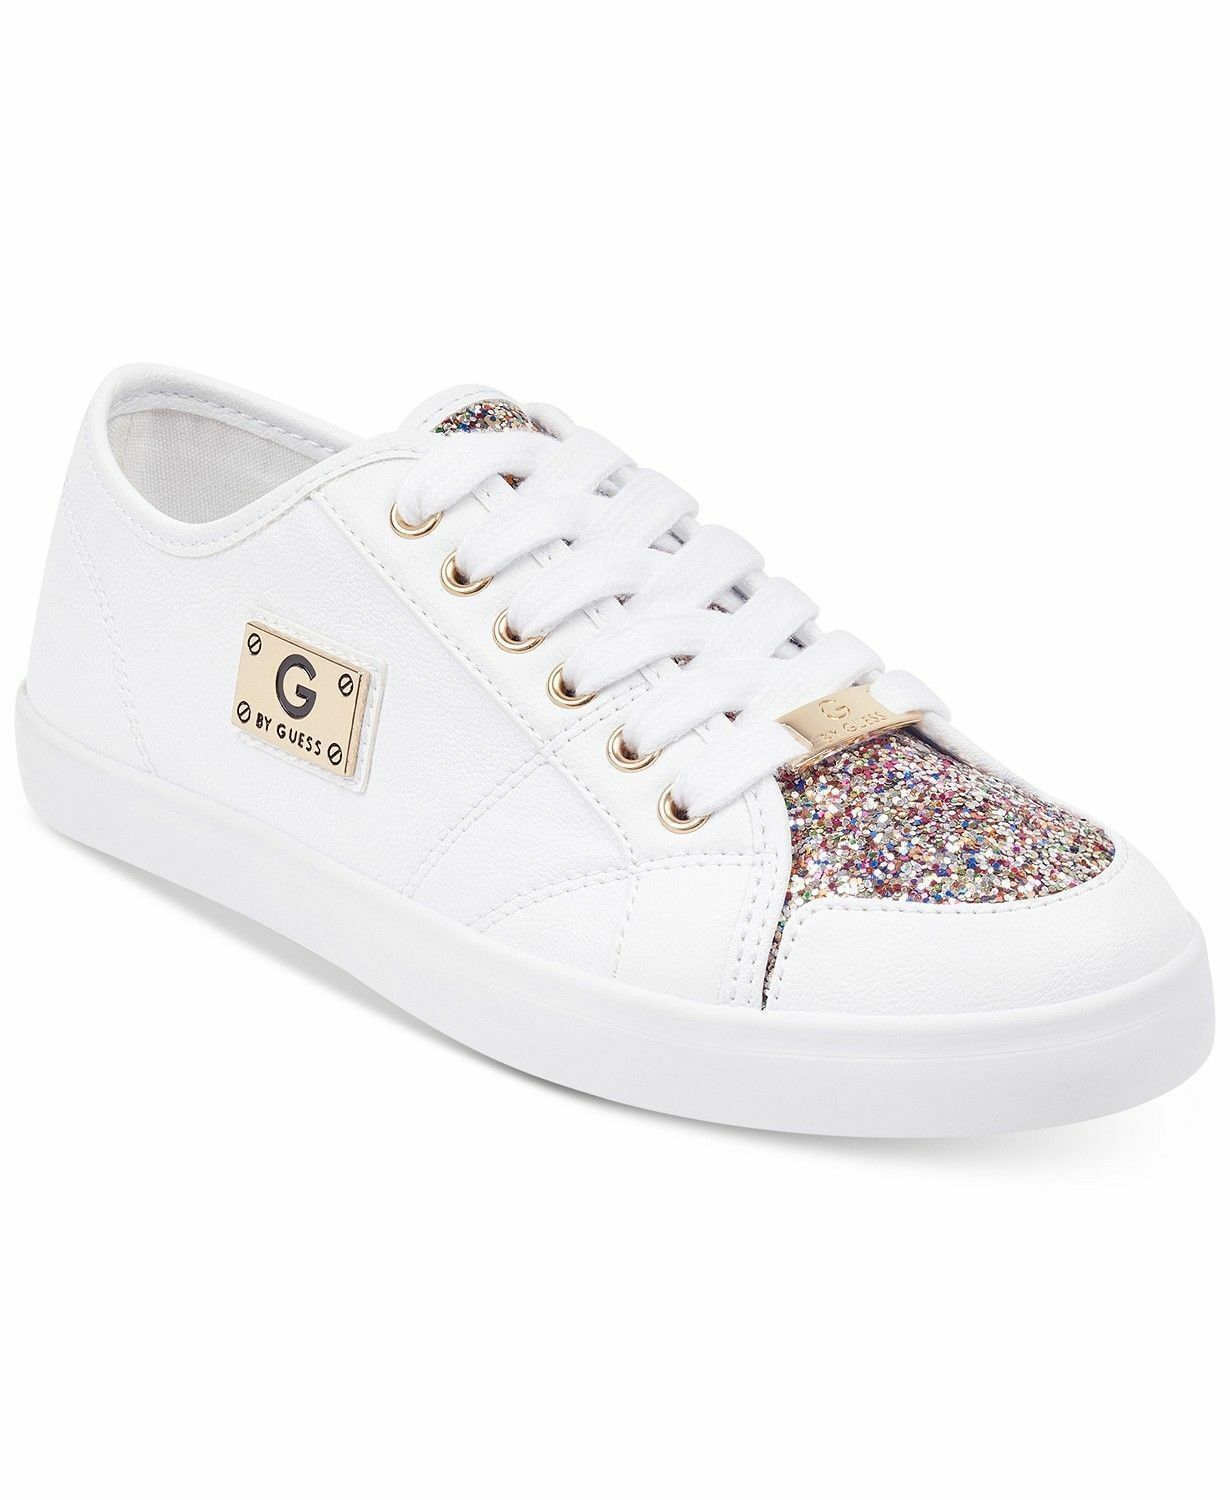 G by Guess Women's Matrix Lace Up Quilted Leather Glitter Sneakers Shoes White